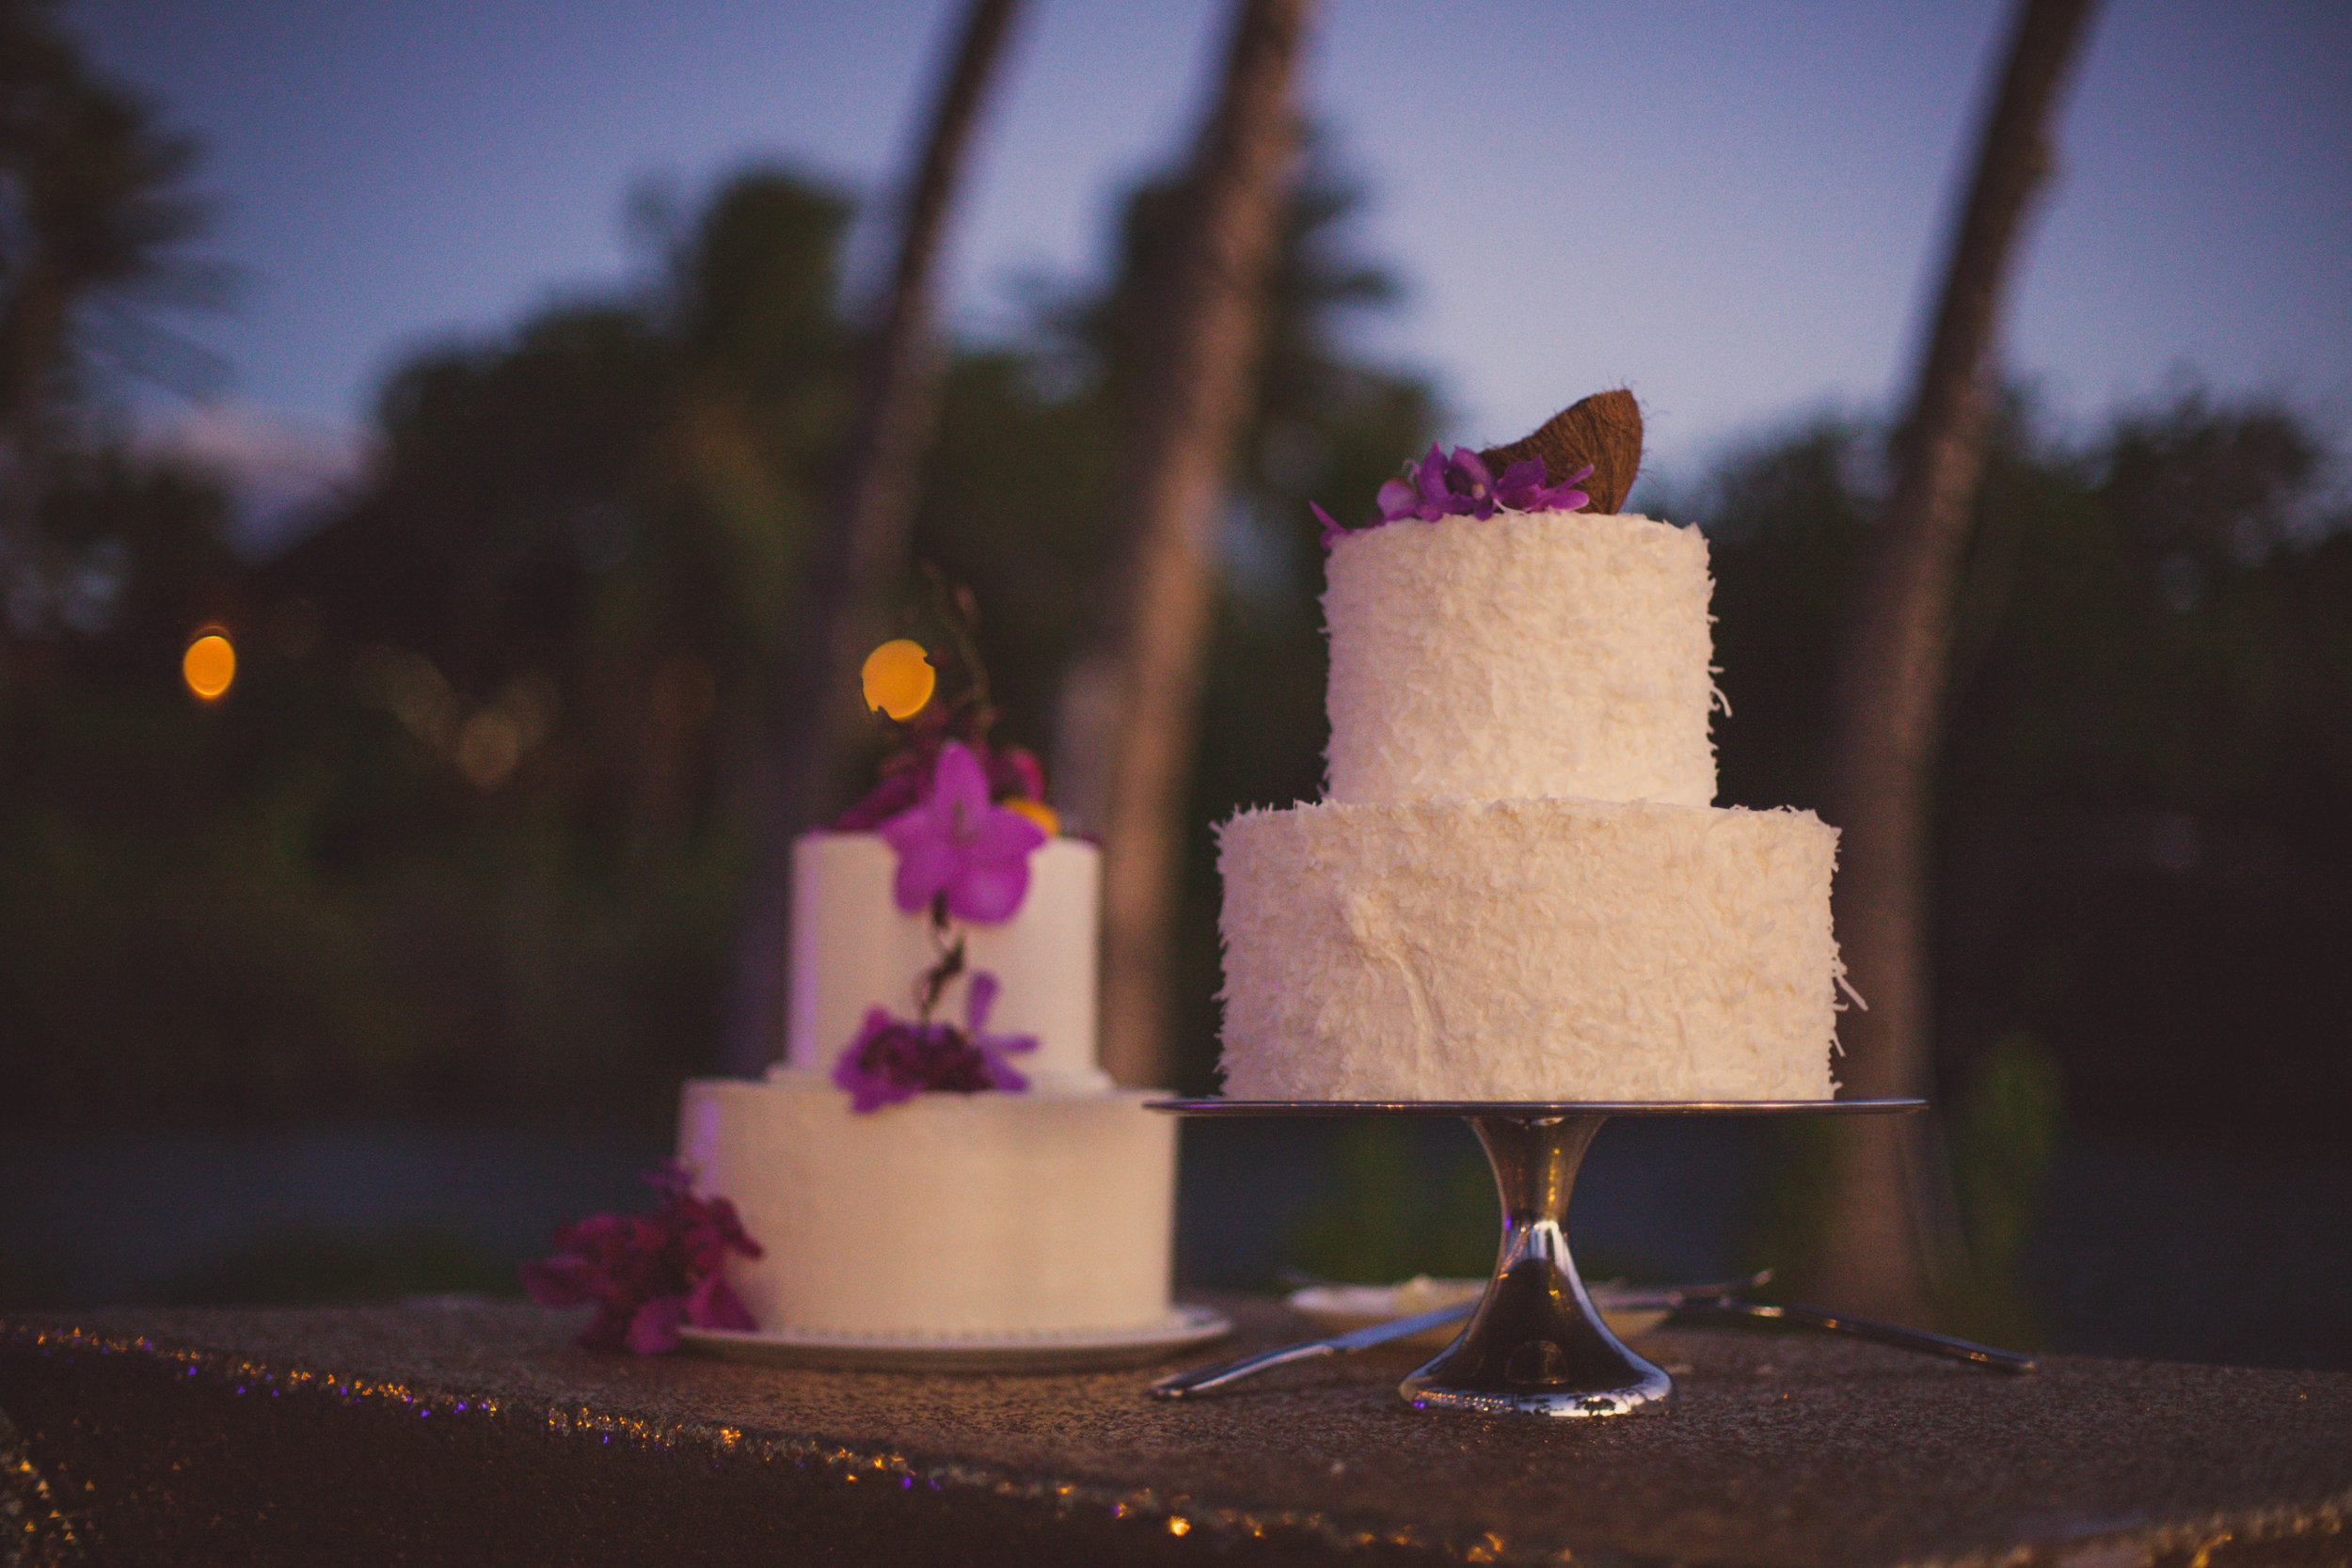 big island hawaii fairmont orchid beach wedding © kelilina photography 20170812191356-1.jpg